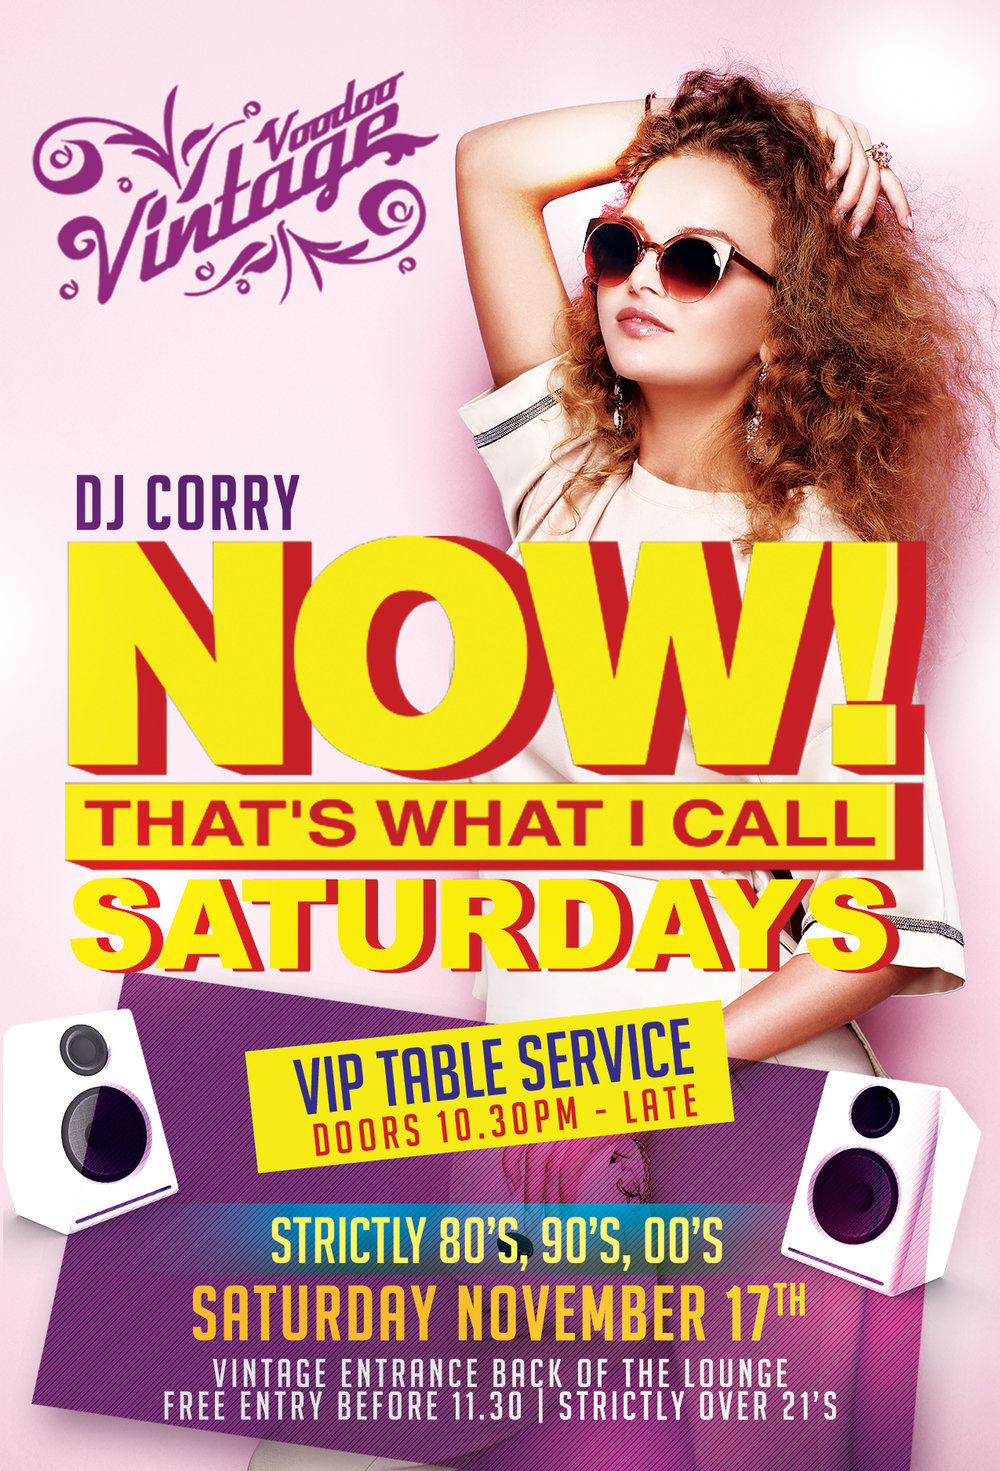 voodoo-vintage-now-thats-what-i-call-saturdays-nov-17-2018.jpg